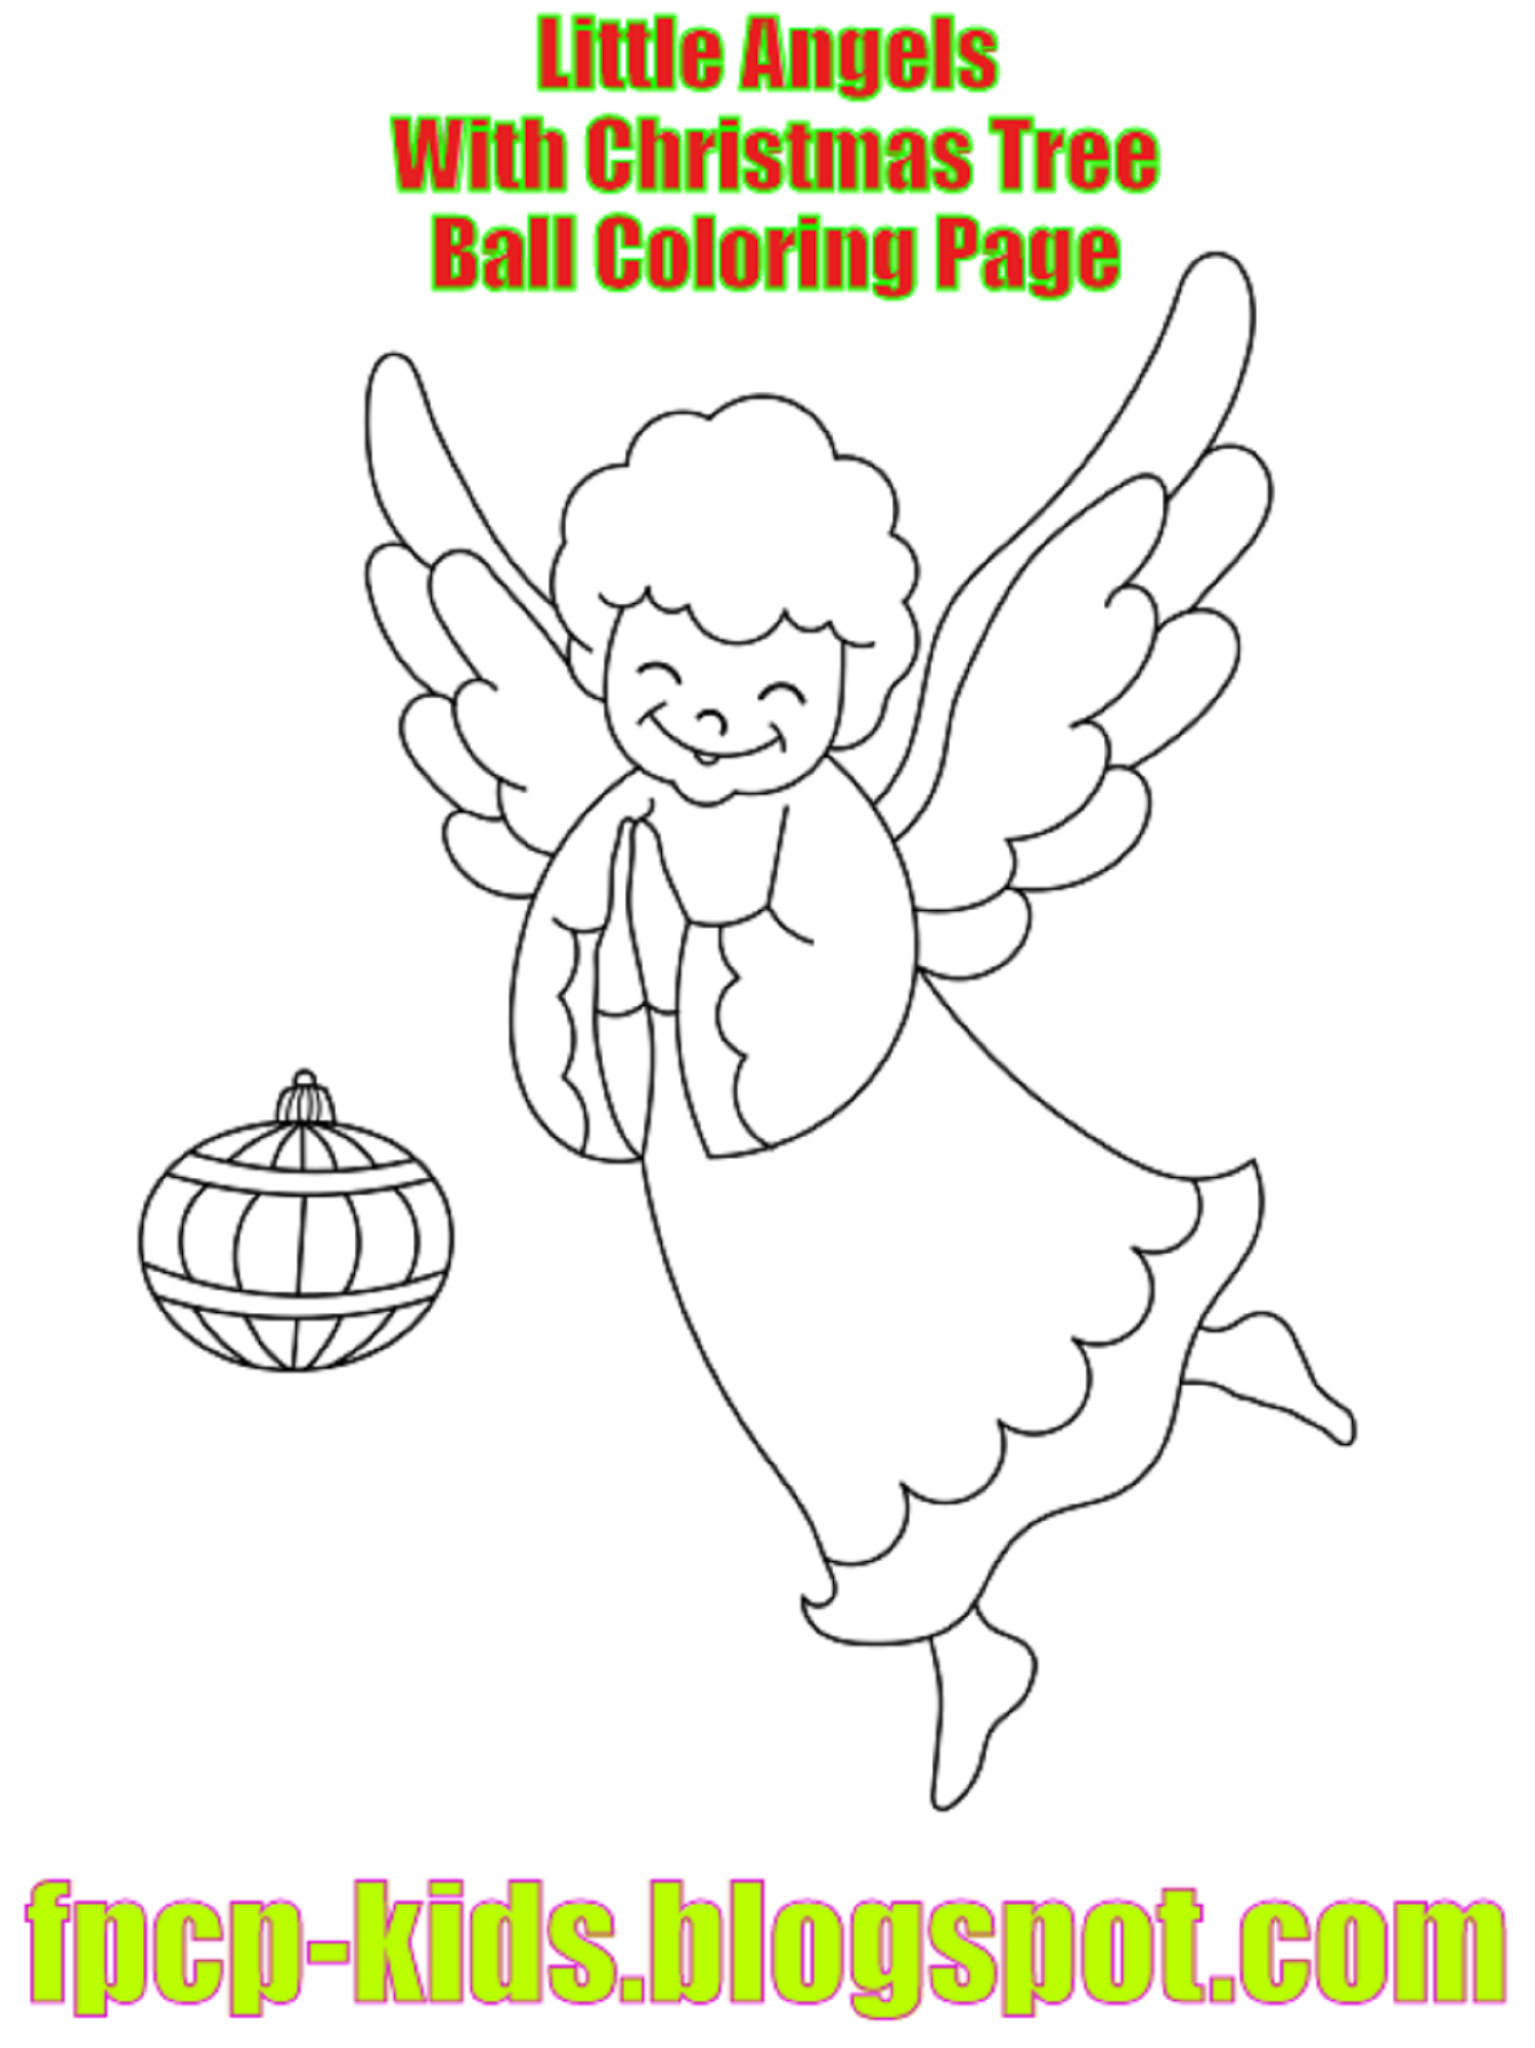 Little Angels With Christmas Tree Ball Coloring Page